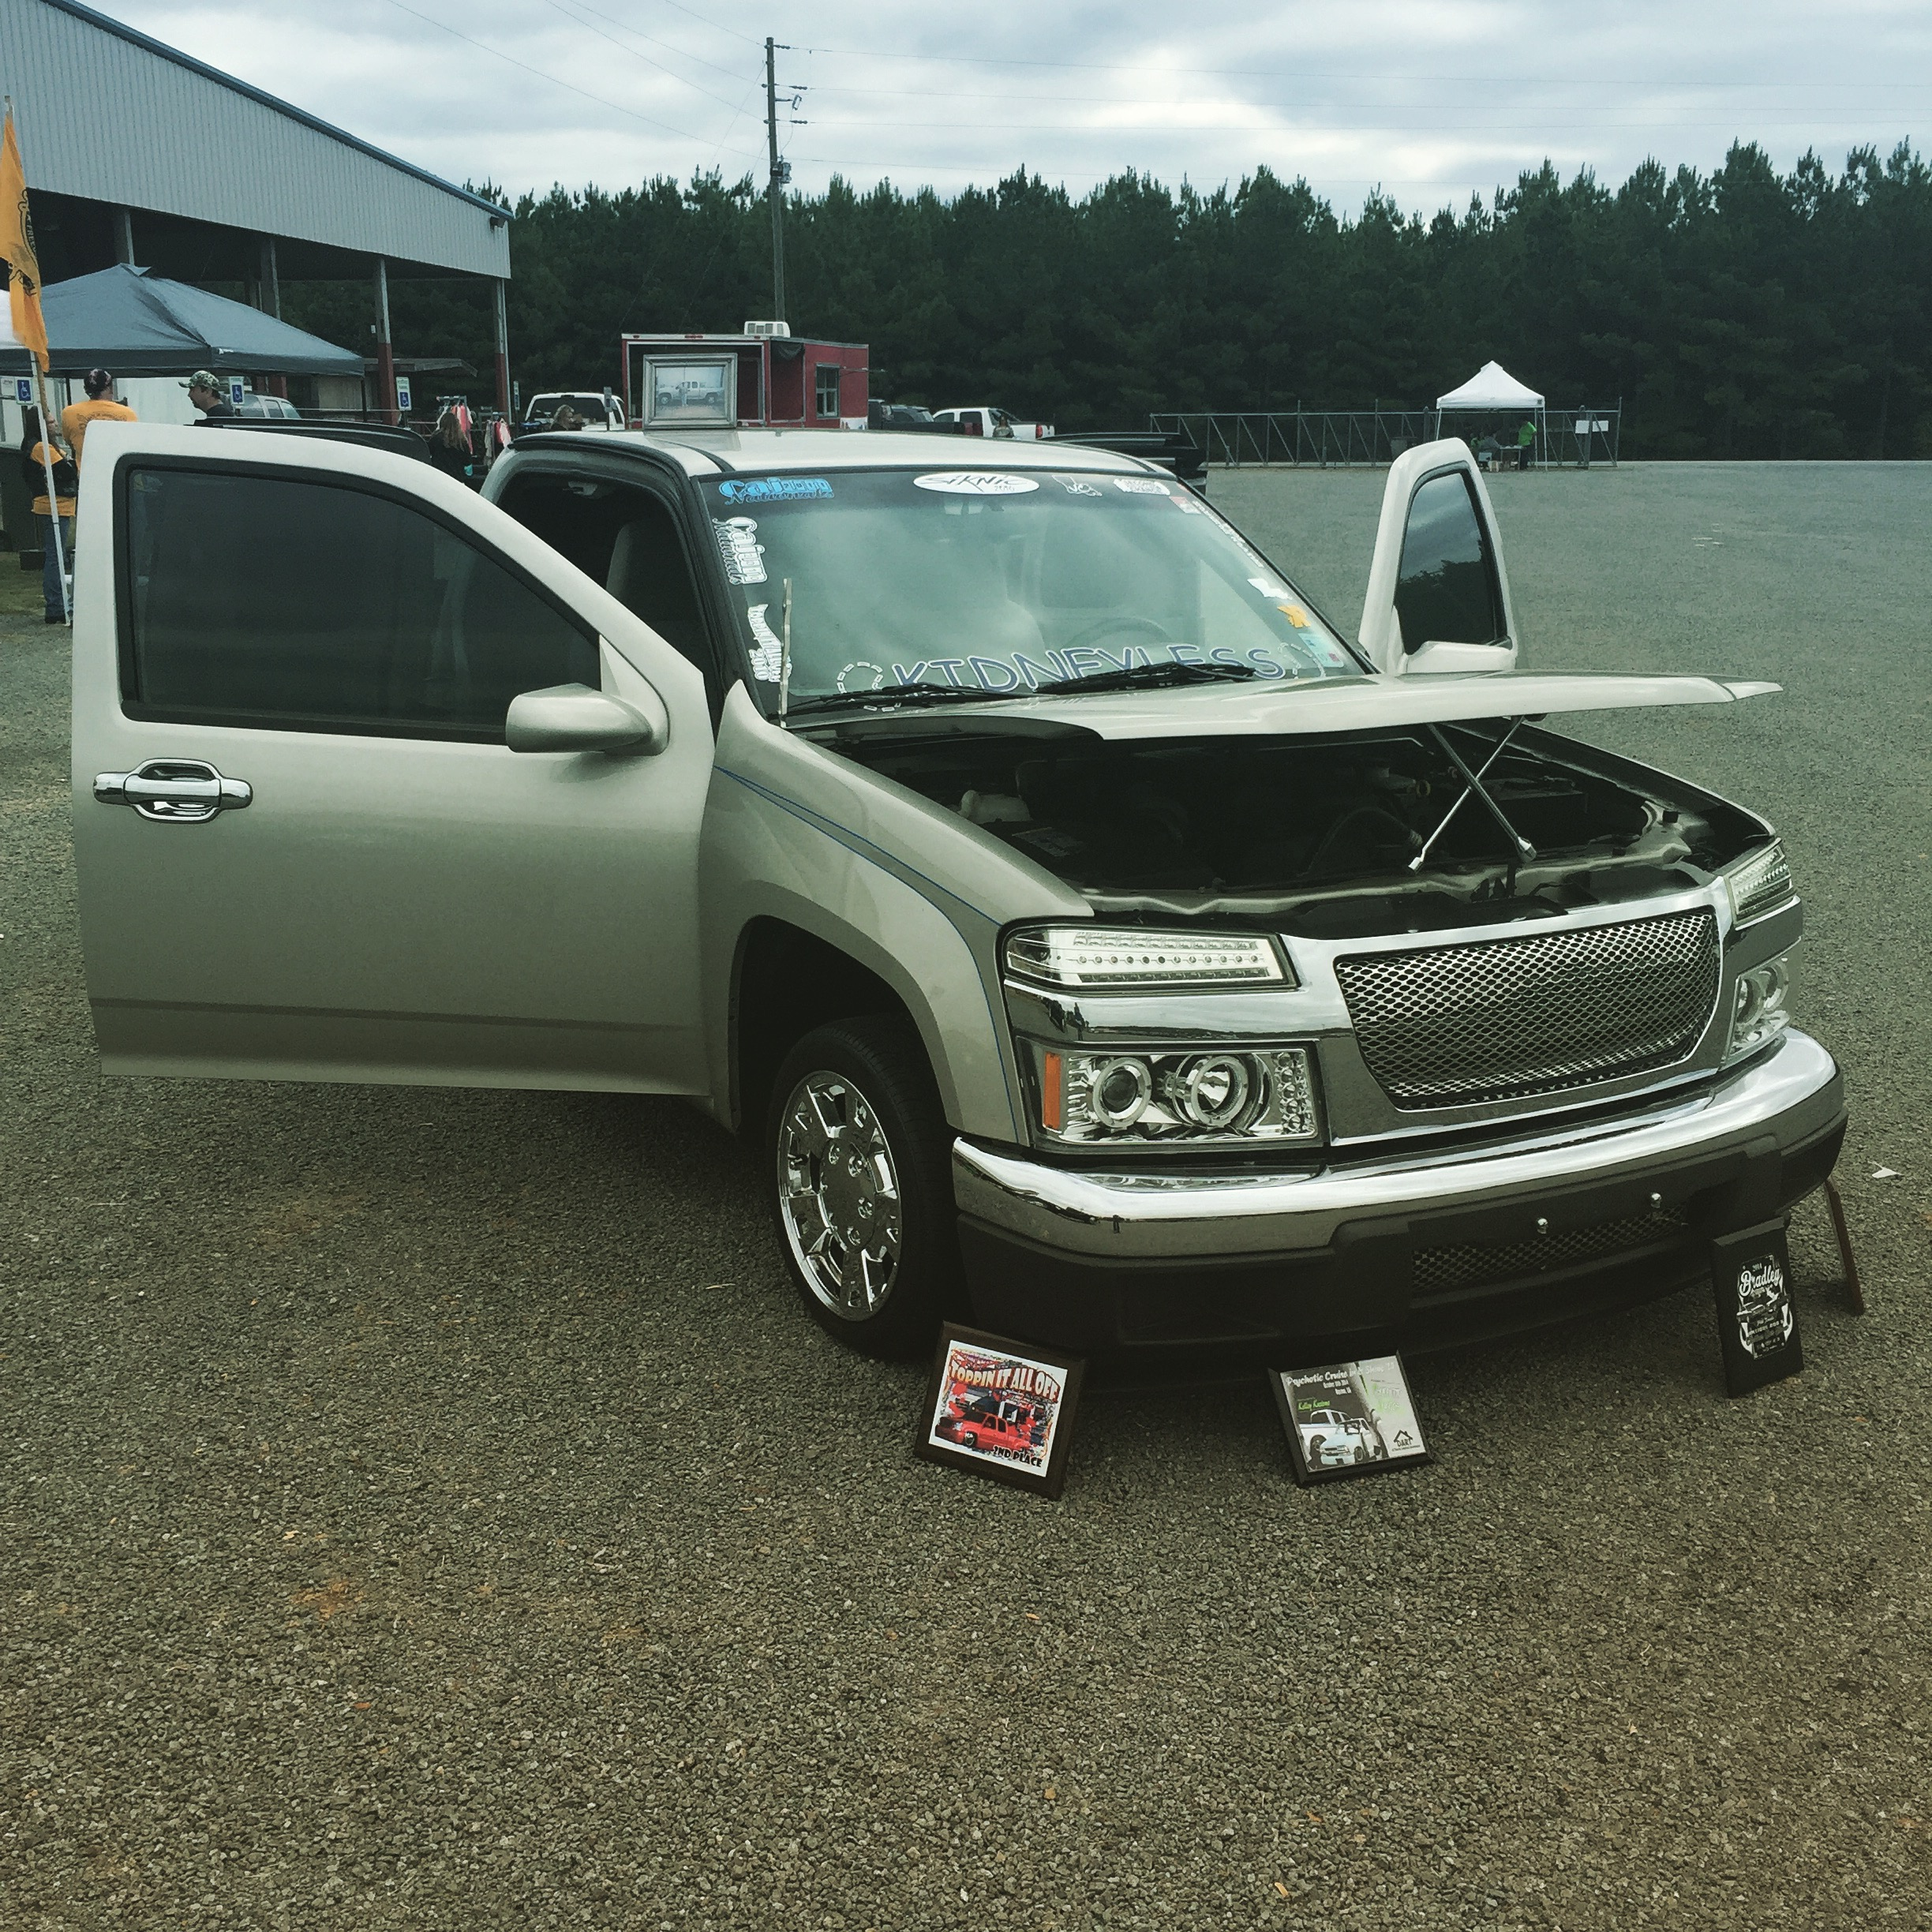 2nd Chance Car & Truck Show in honor of recipient Tommy Curry